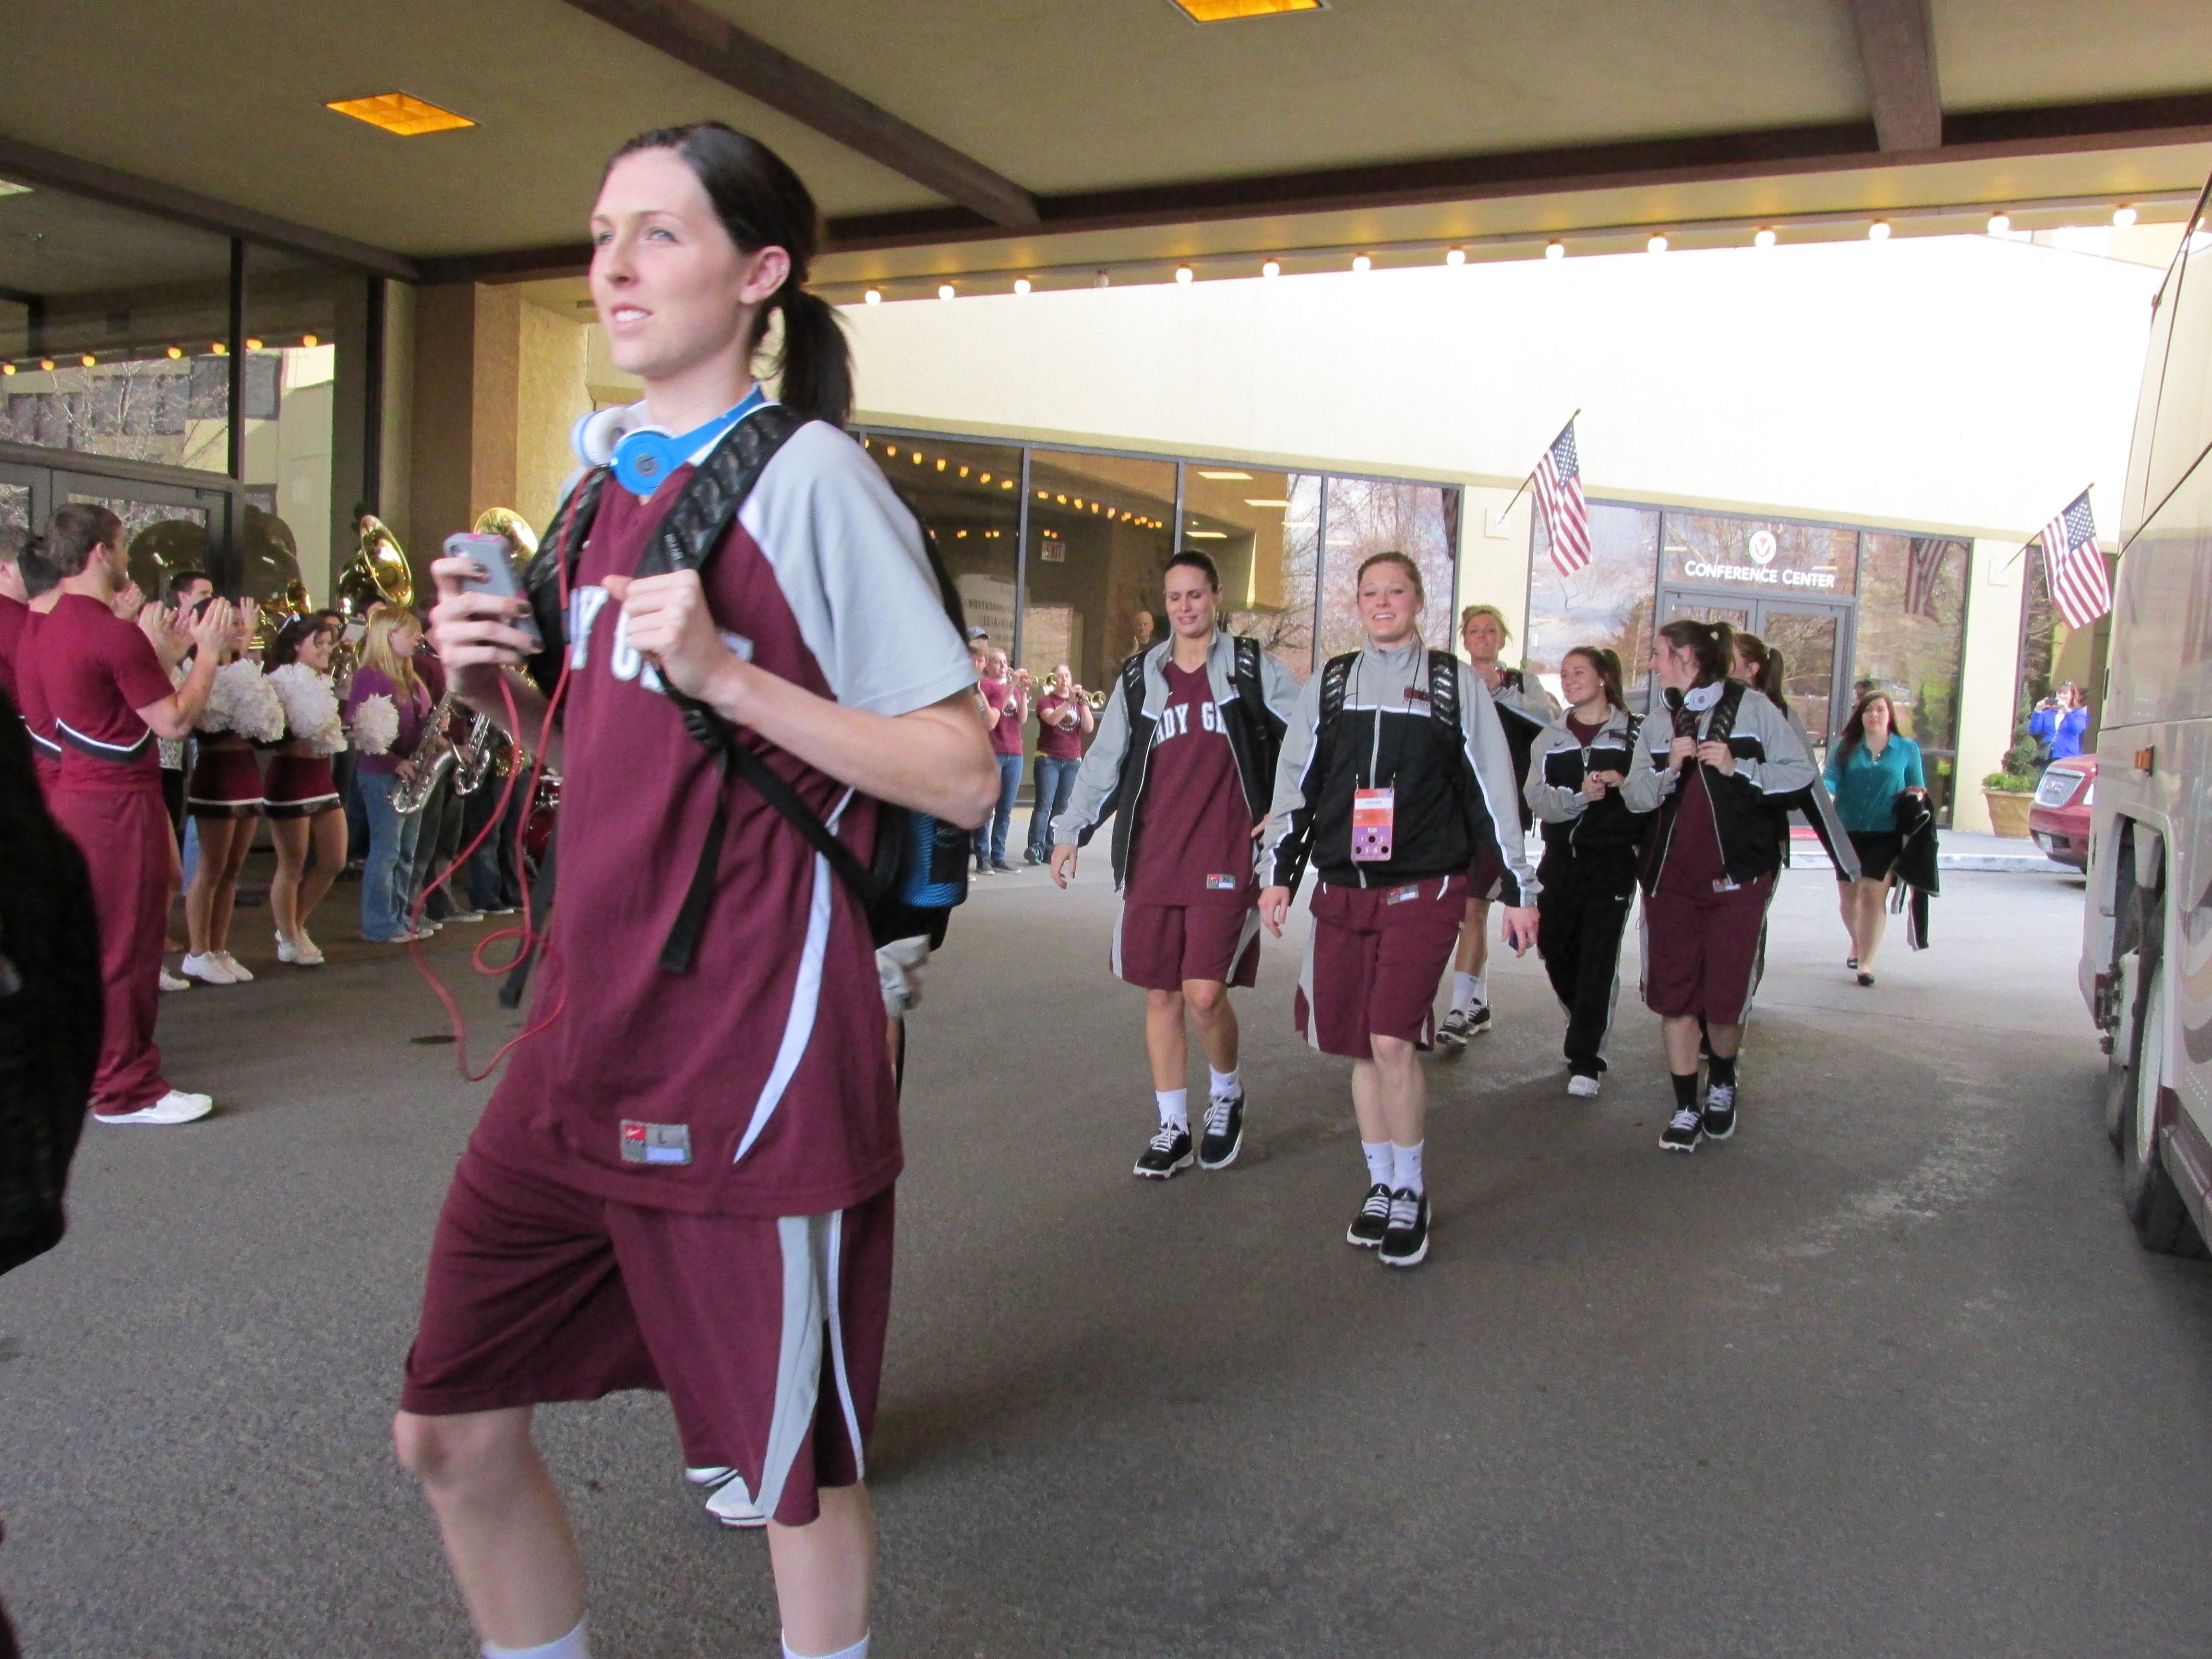 The Lady Griz walking to the bus while the band plays and the cheer squad cheers.